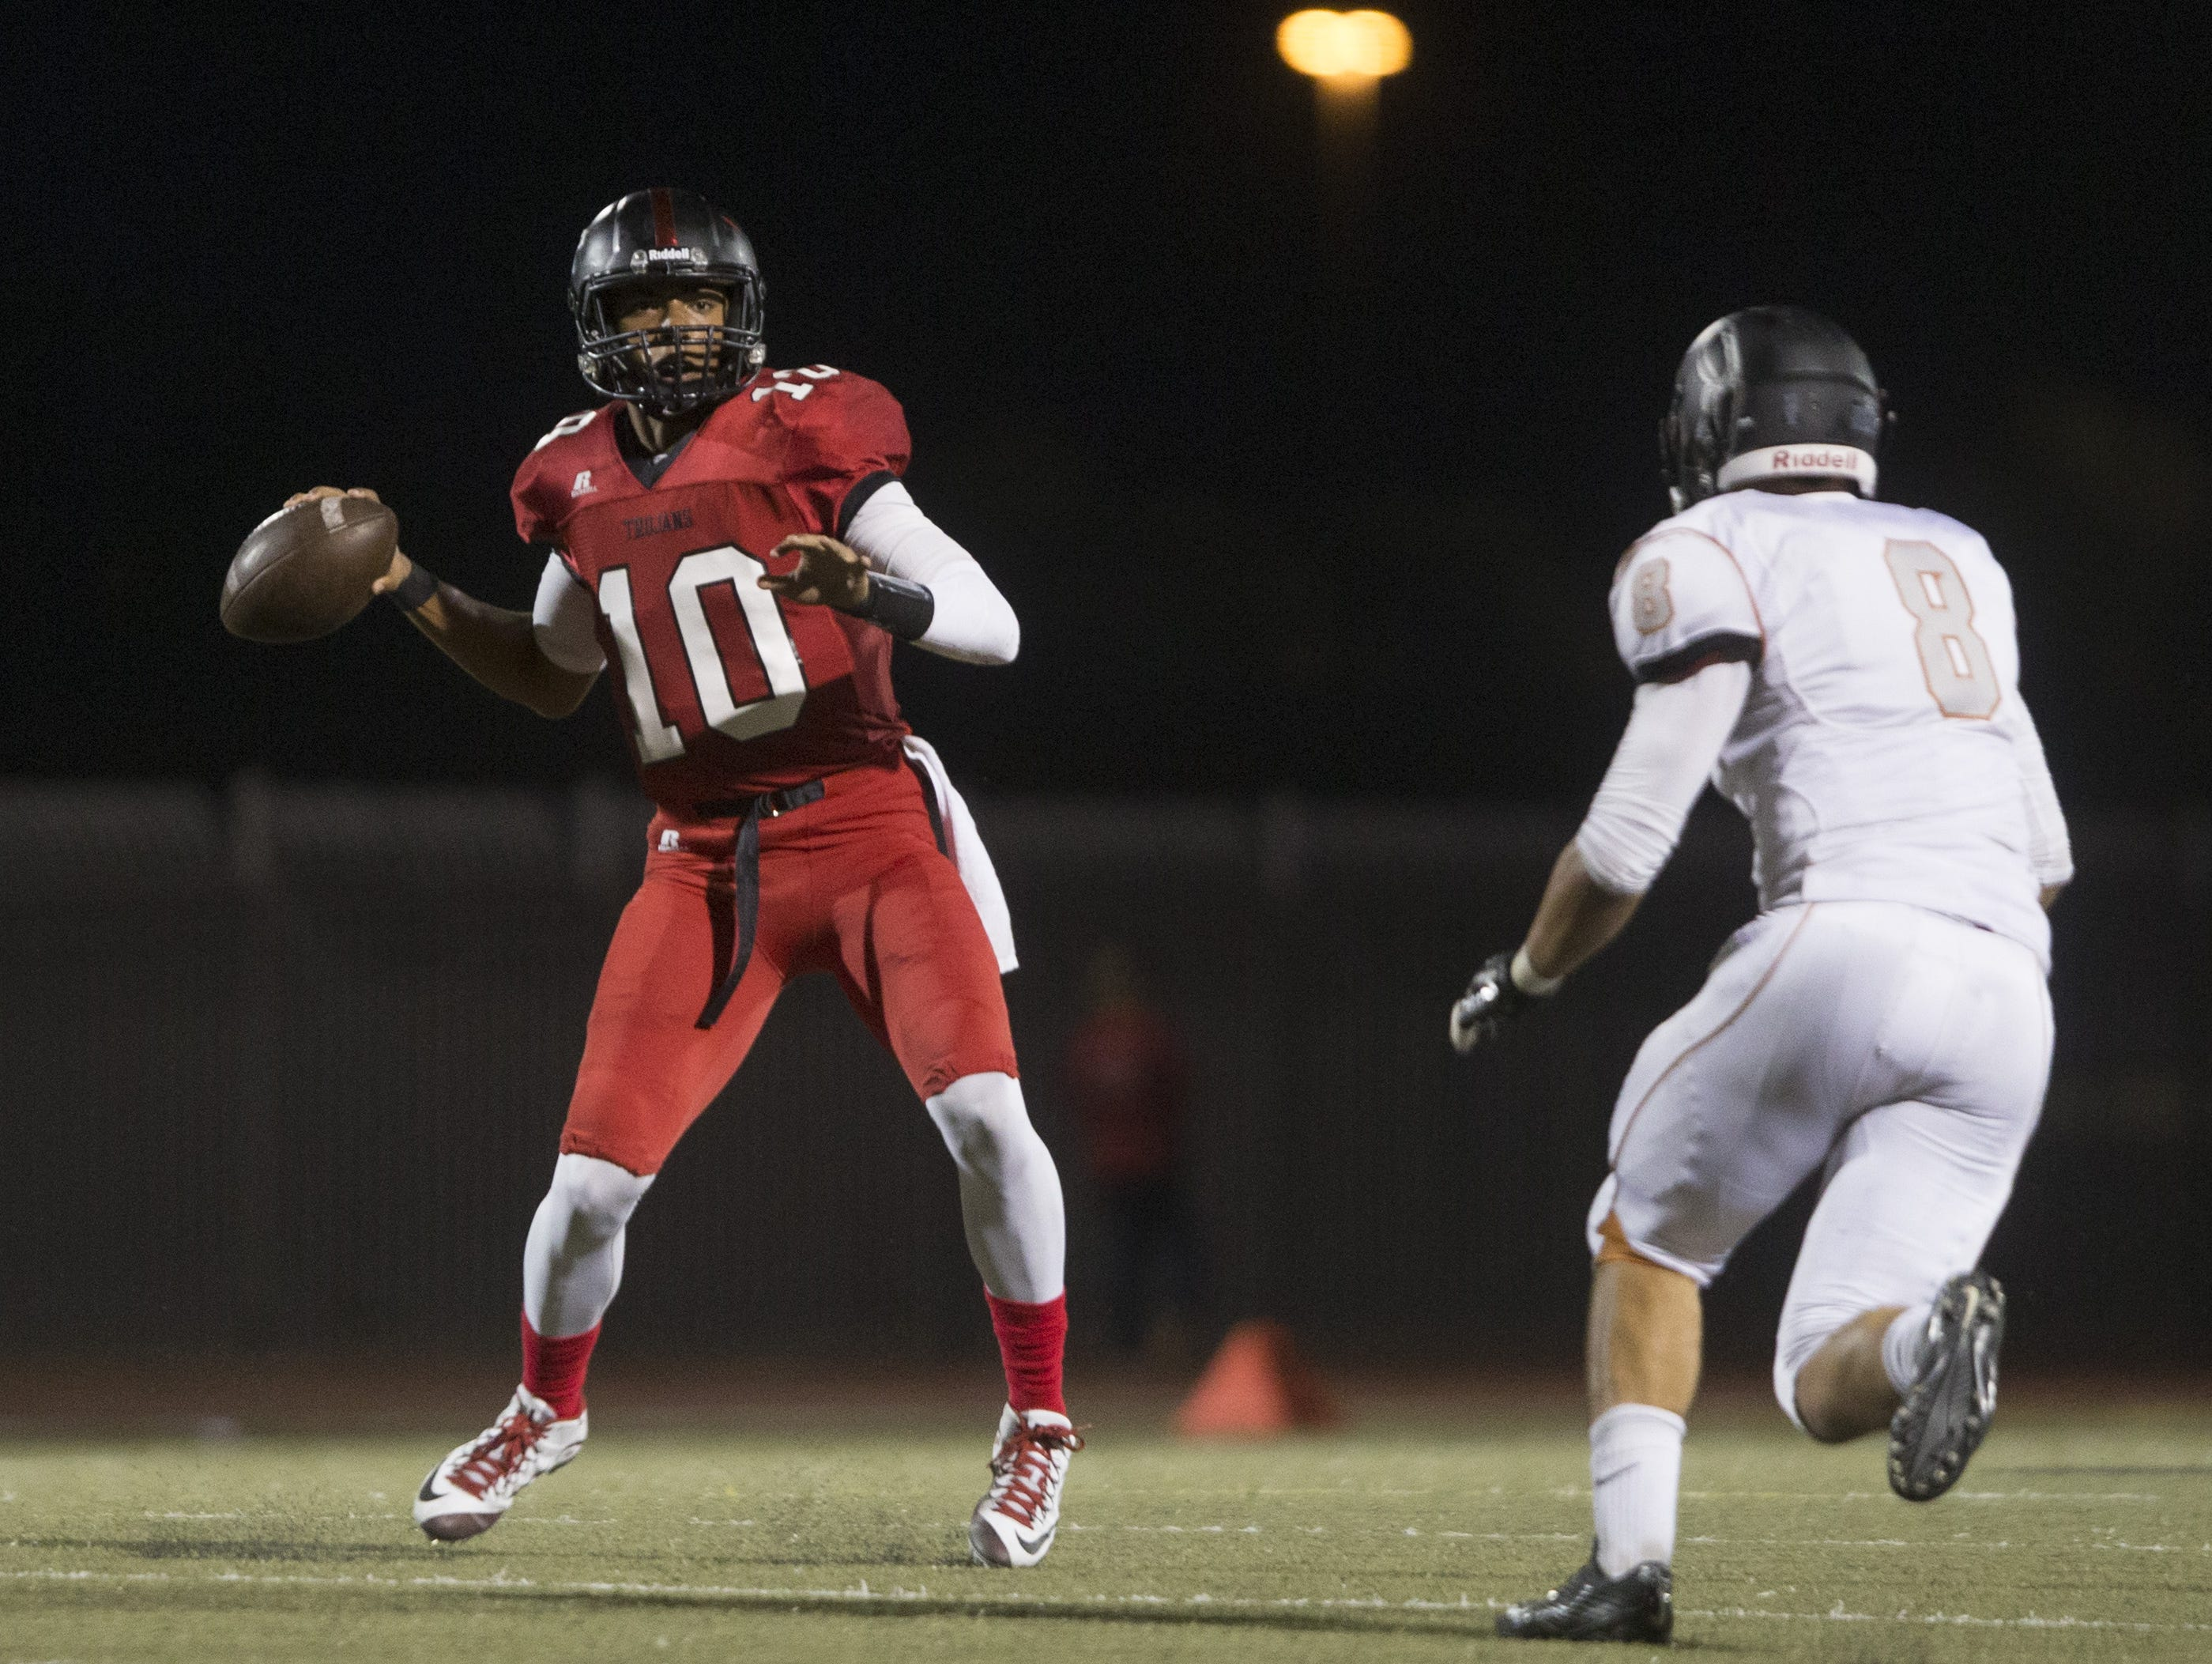 Paradise Valley's Daniel Bridge-Gadd escapes pressure from Desert Edge's Alex Aguirre (8) before running for a first down at Paradise Valley High School in Paradise Valley, AZ on September 3, 2015.